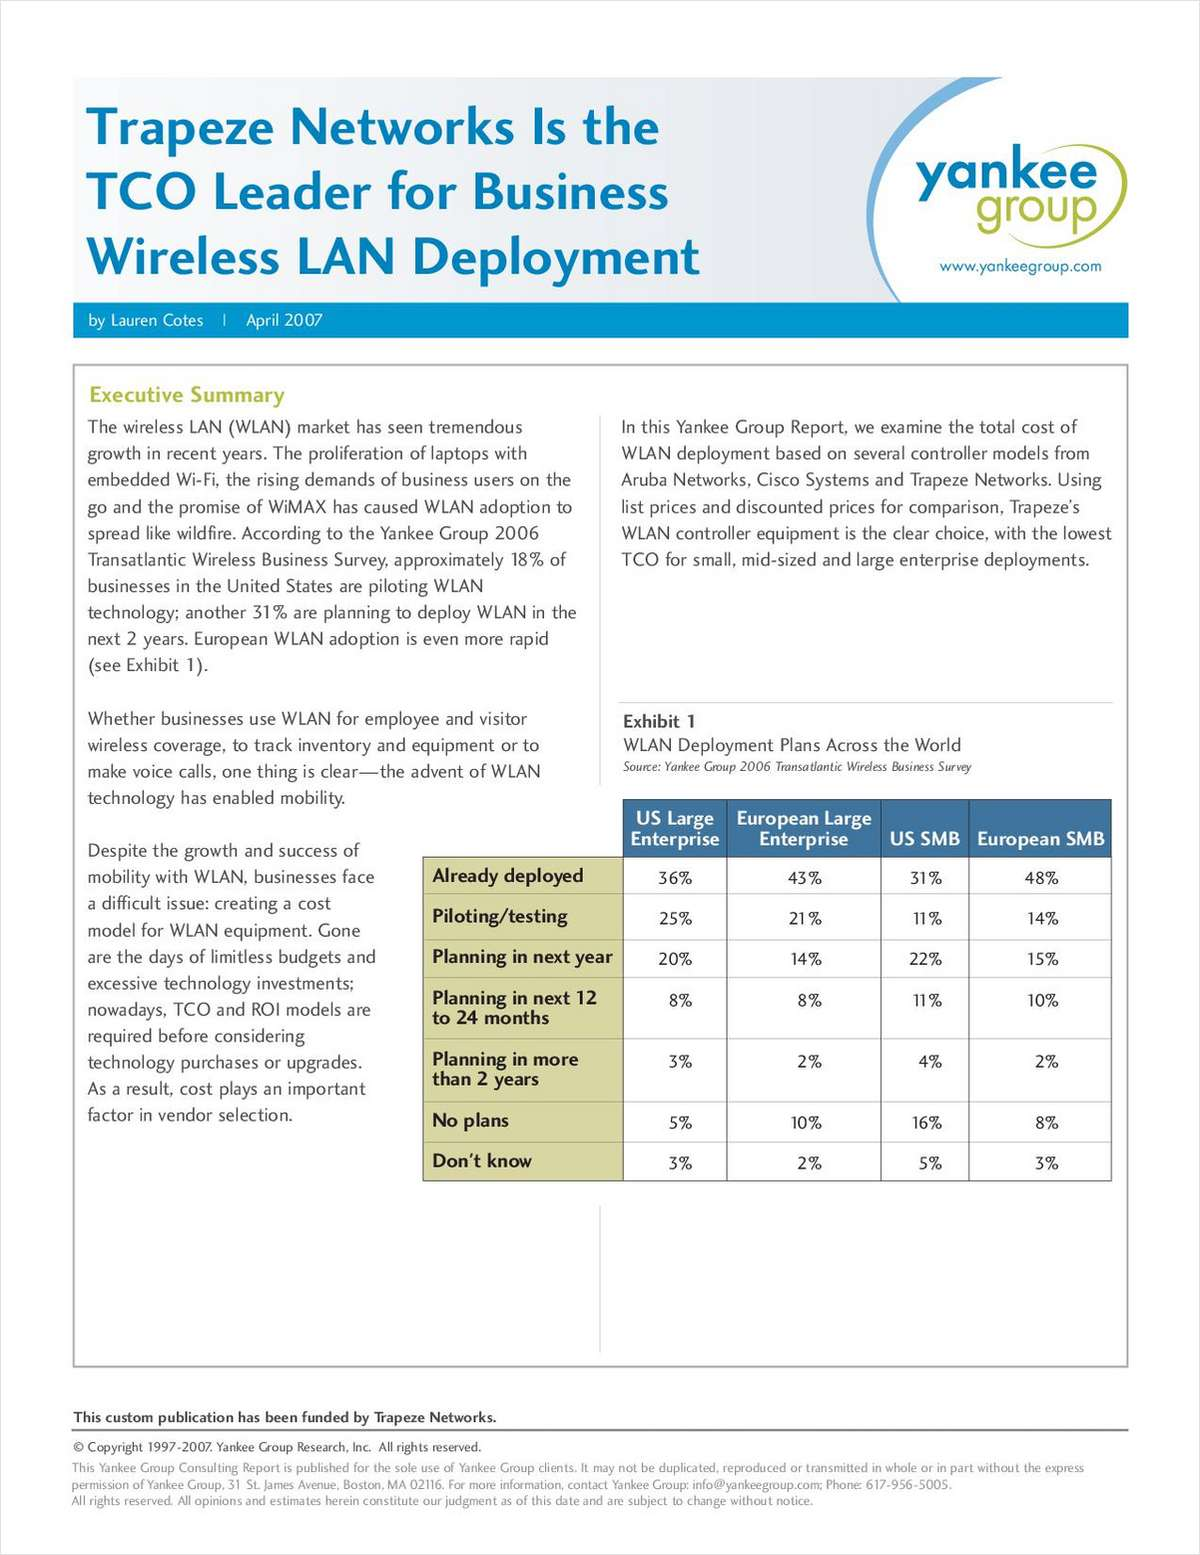 TCO Leader for Business Wireless LAN Deployment - a Yankee Group Report